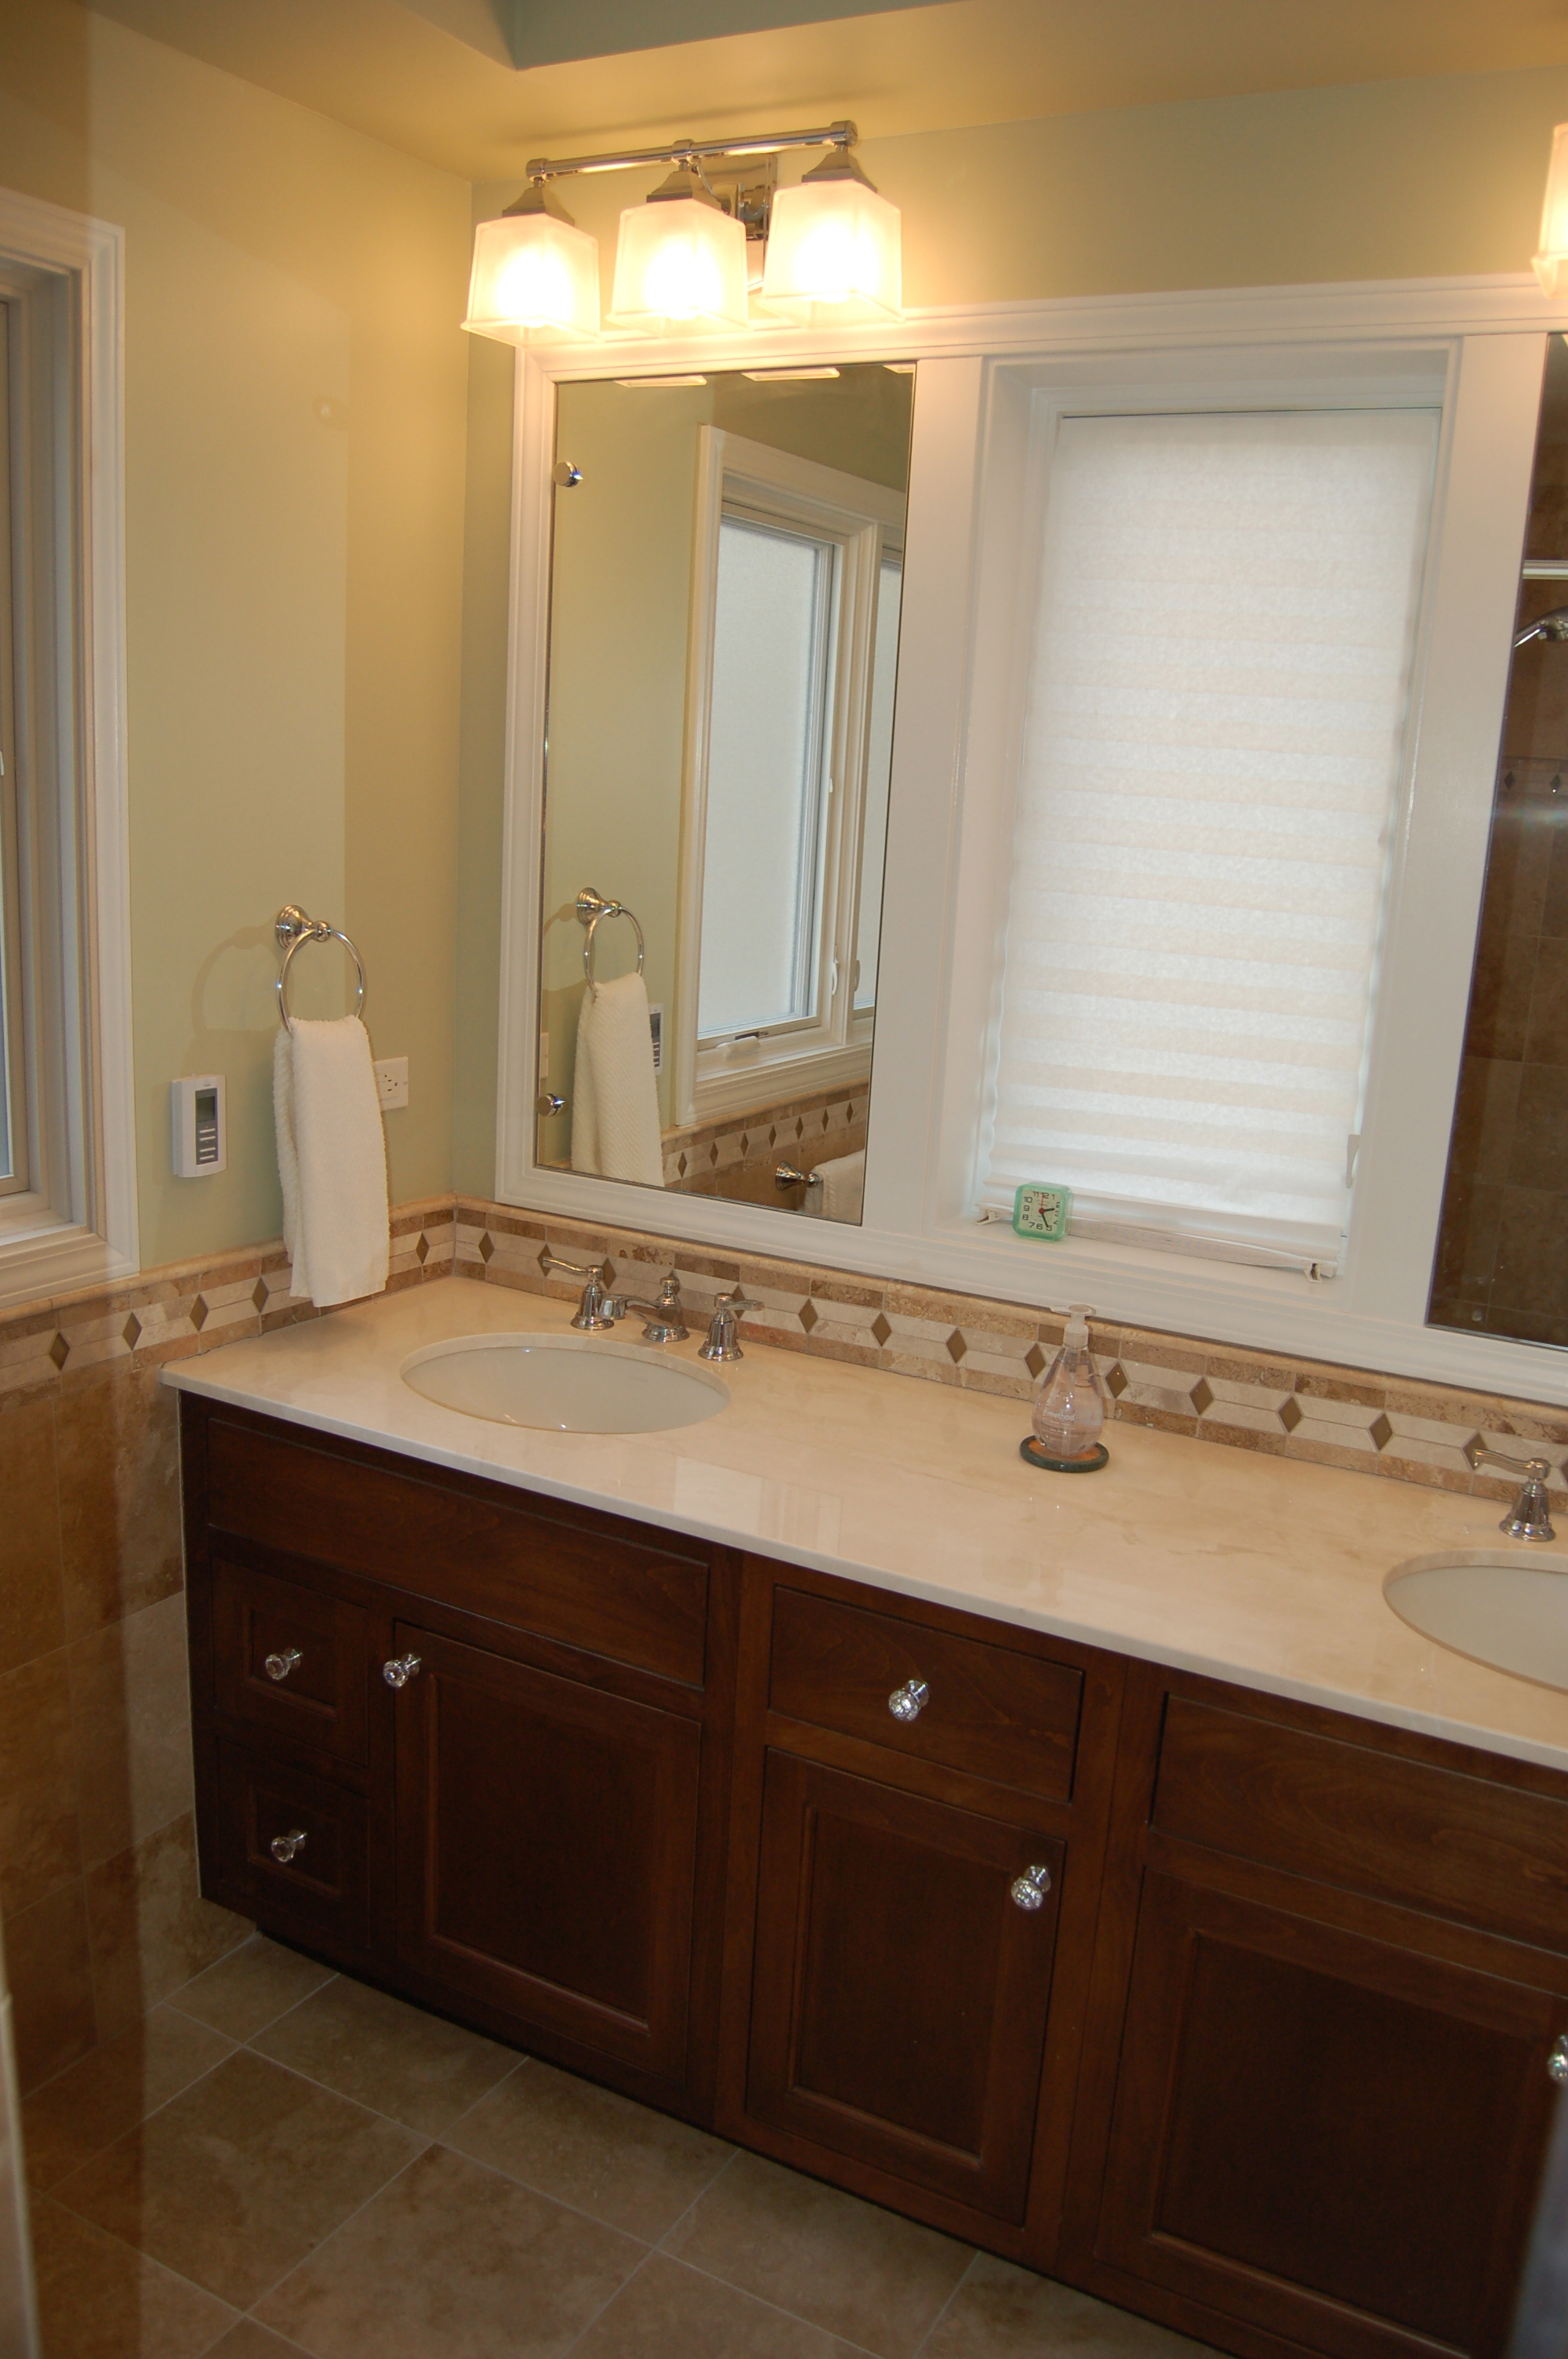 Inspirational Bathroom : Houzz Bathrooms Vanities New Bathroom Vanity Photos throughout Beautiful Houzz Bathroom Mirrors